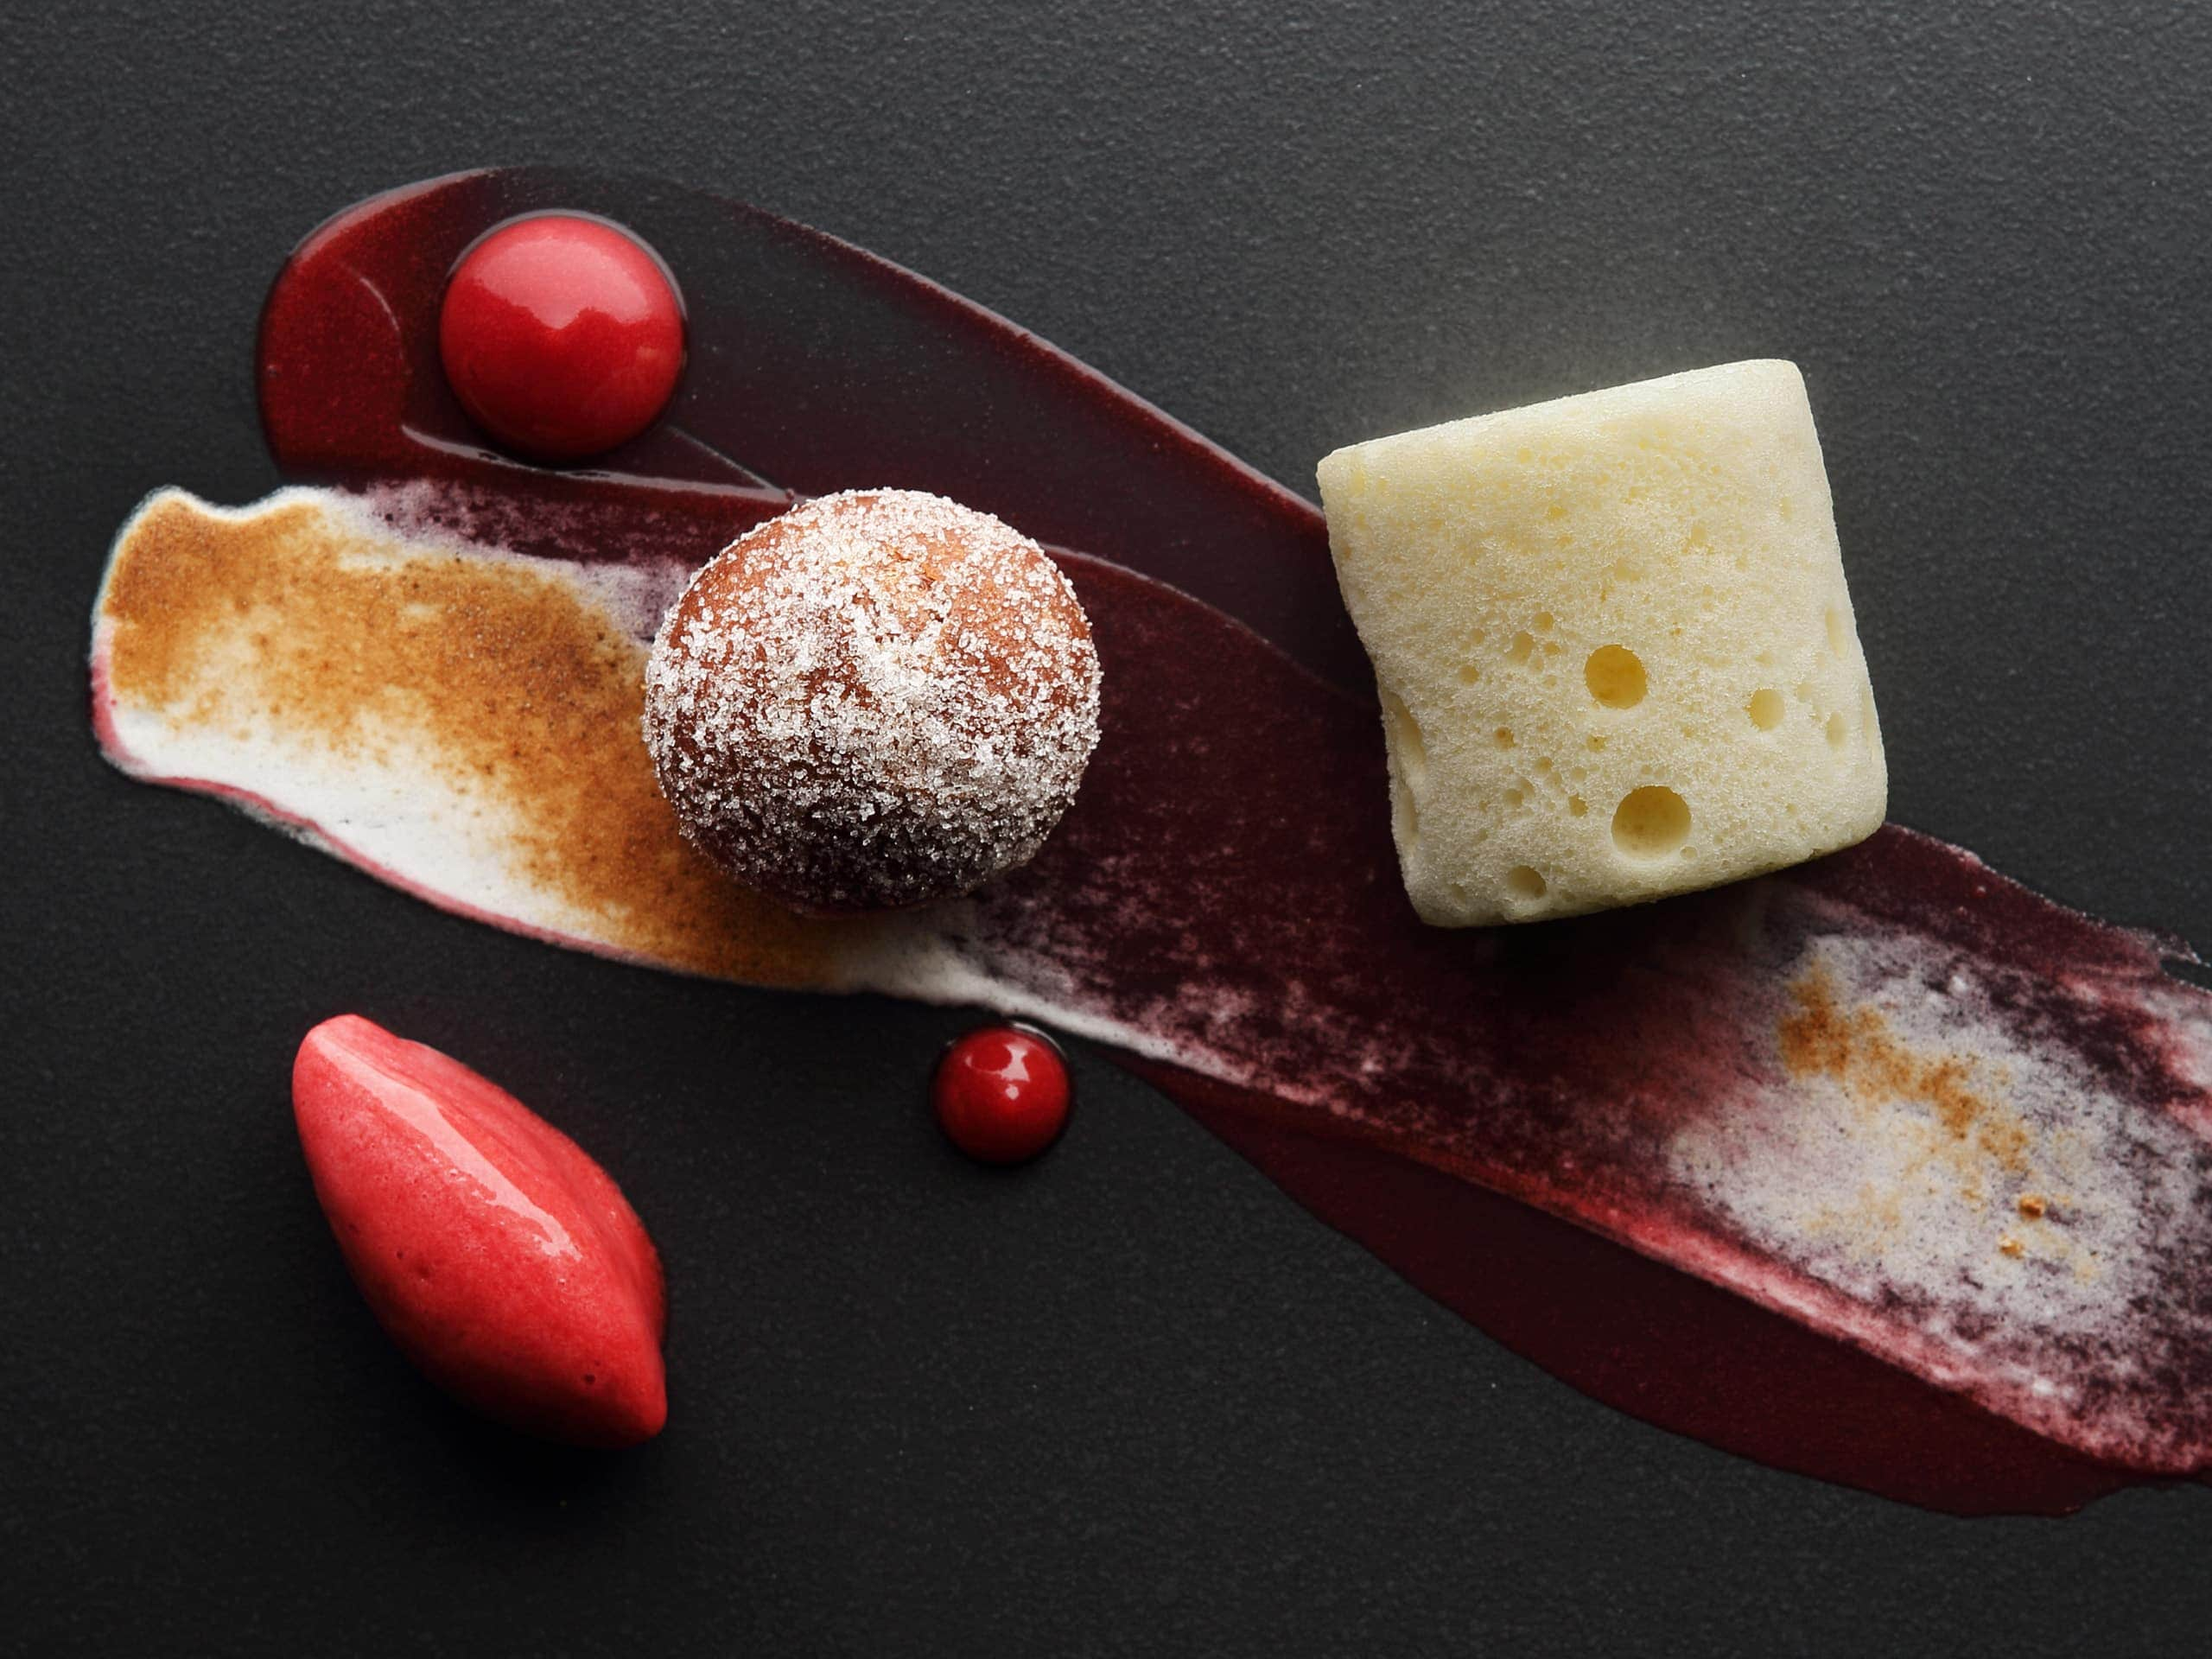 A dessert of raspberry with lemon sabayon. Photo by Elsa Young.